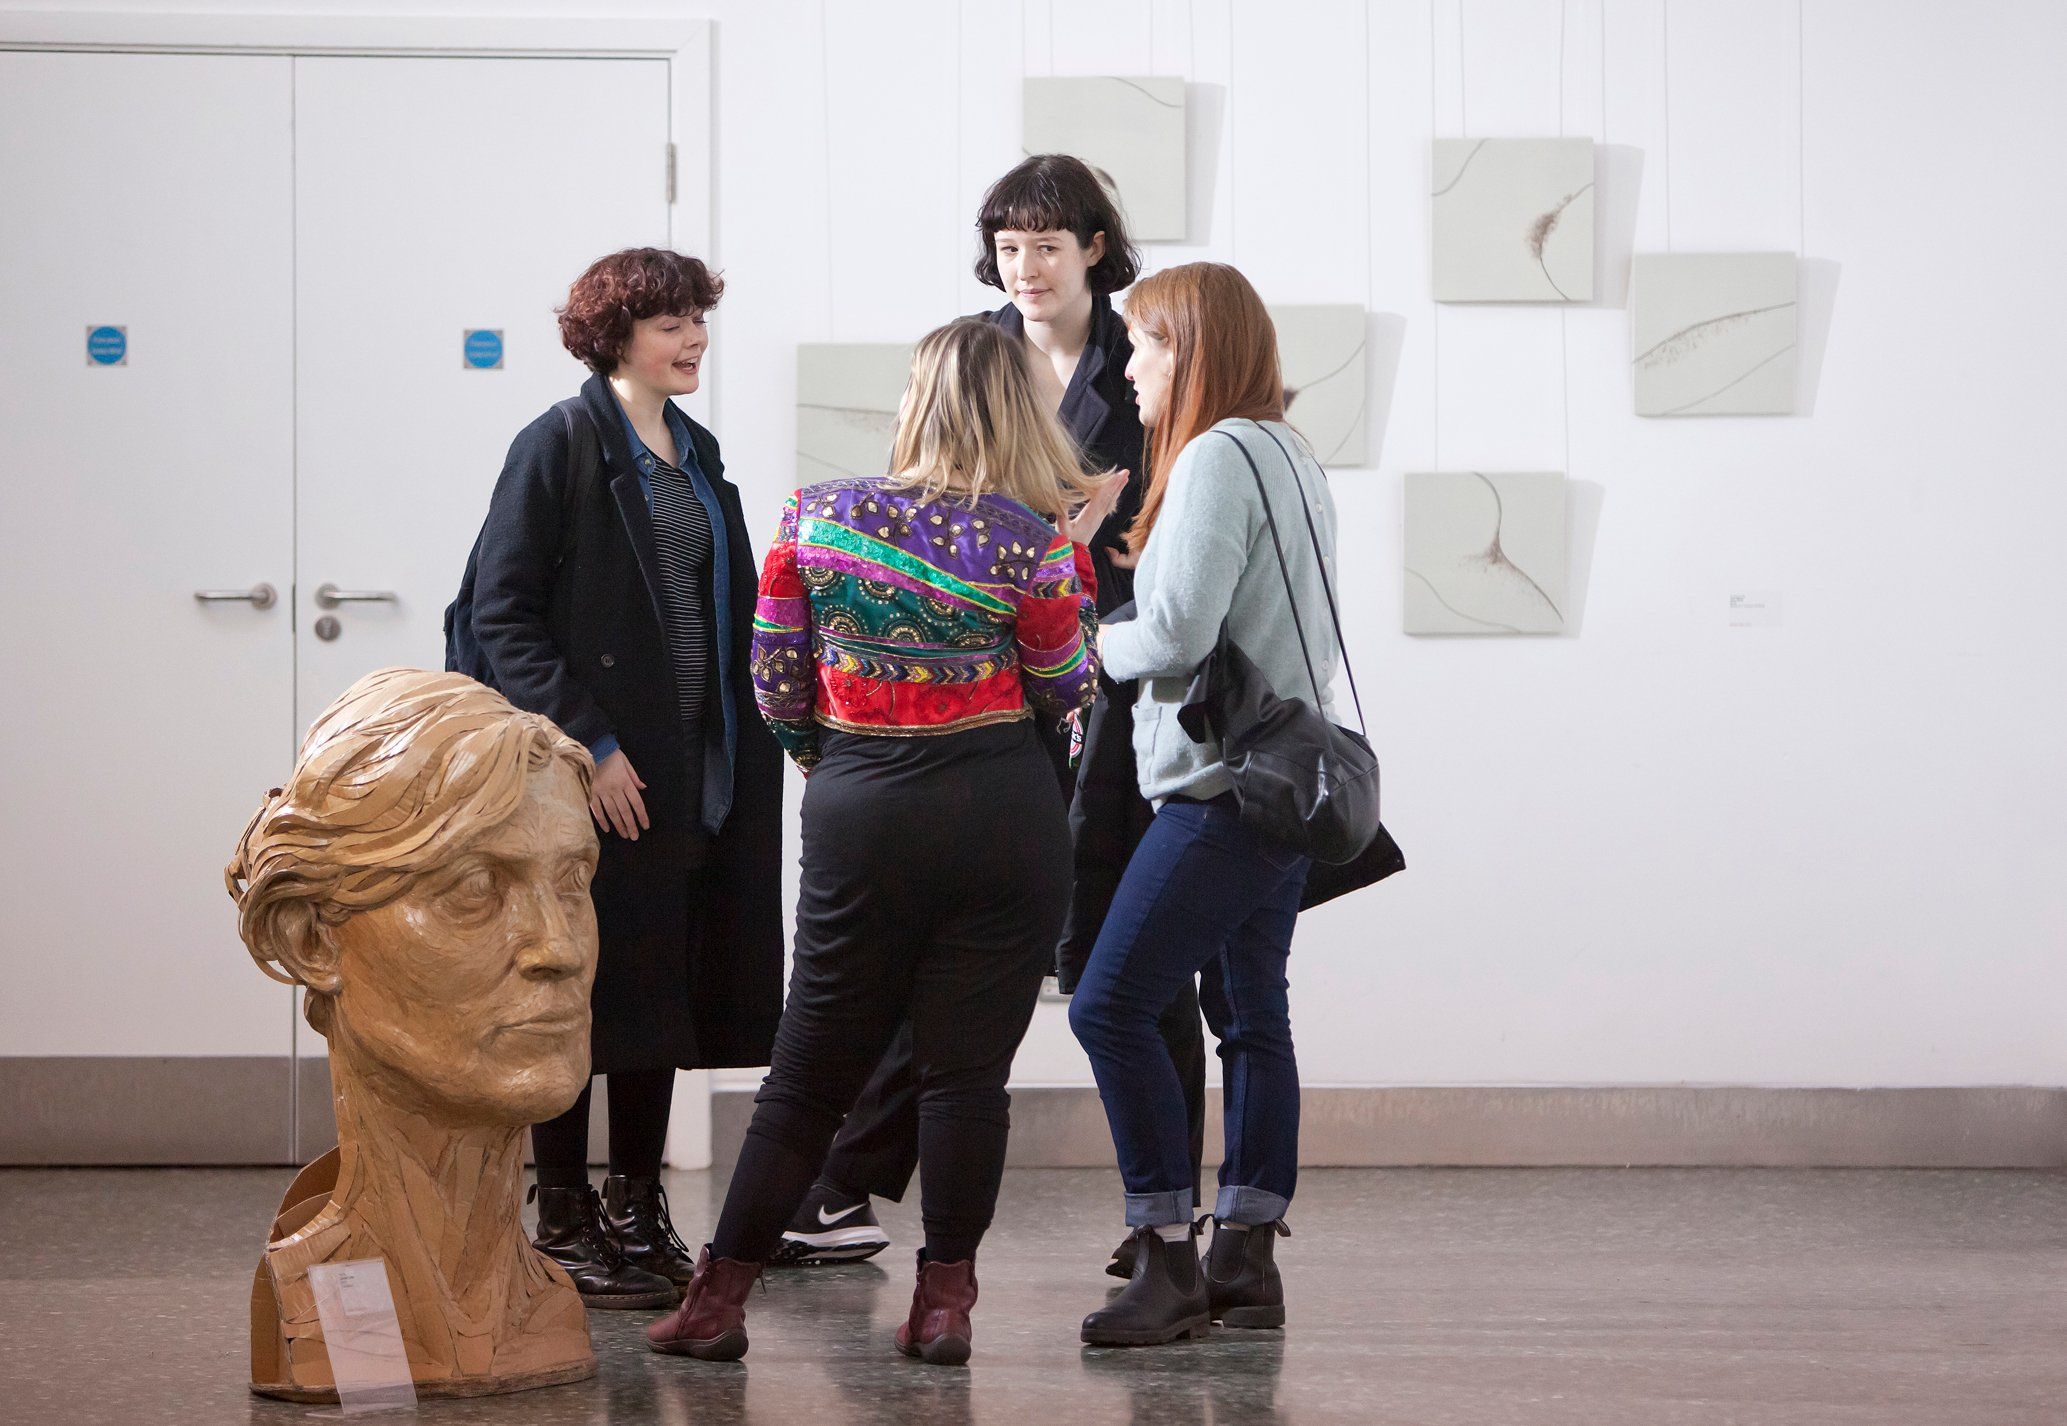 A large white room with people discussing art